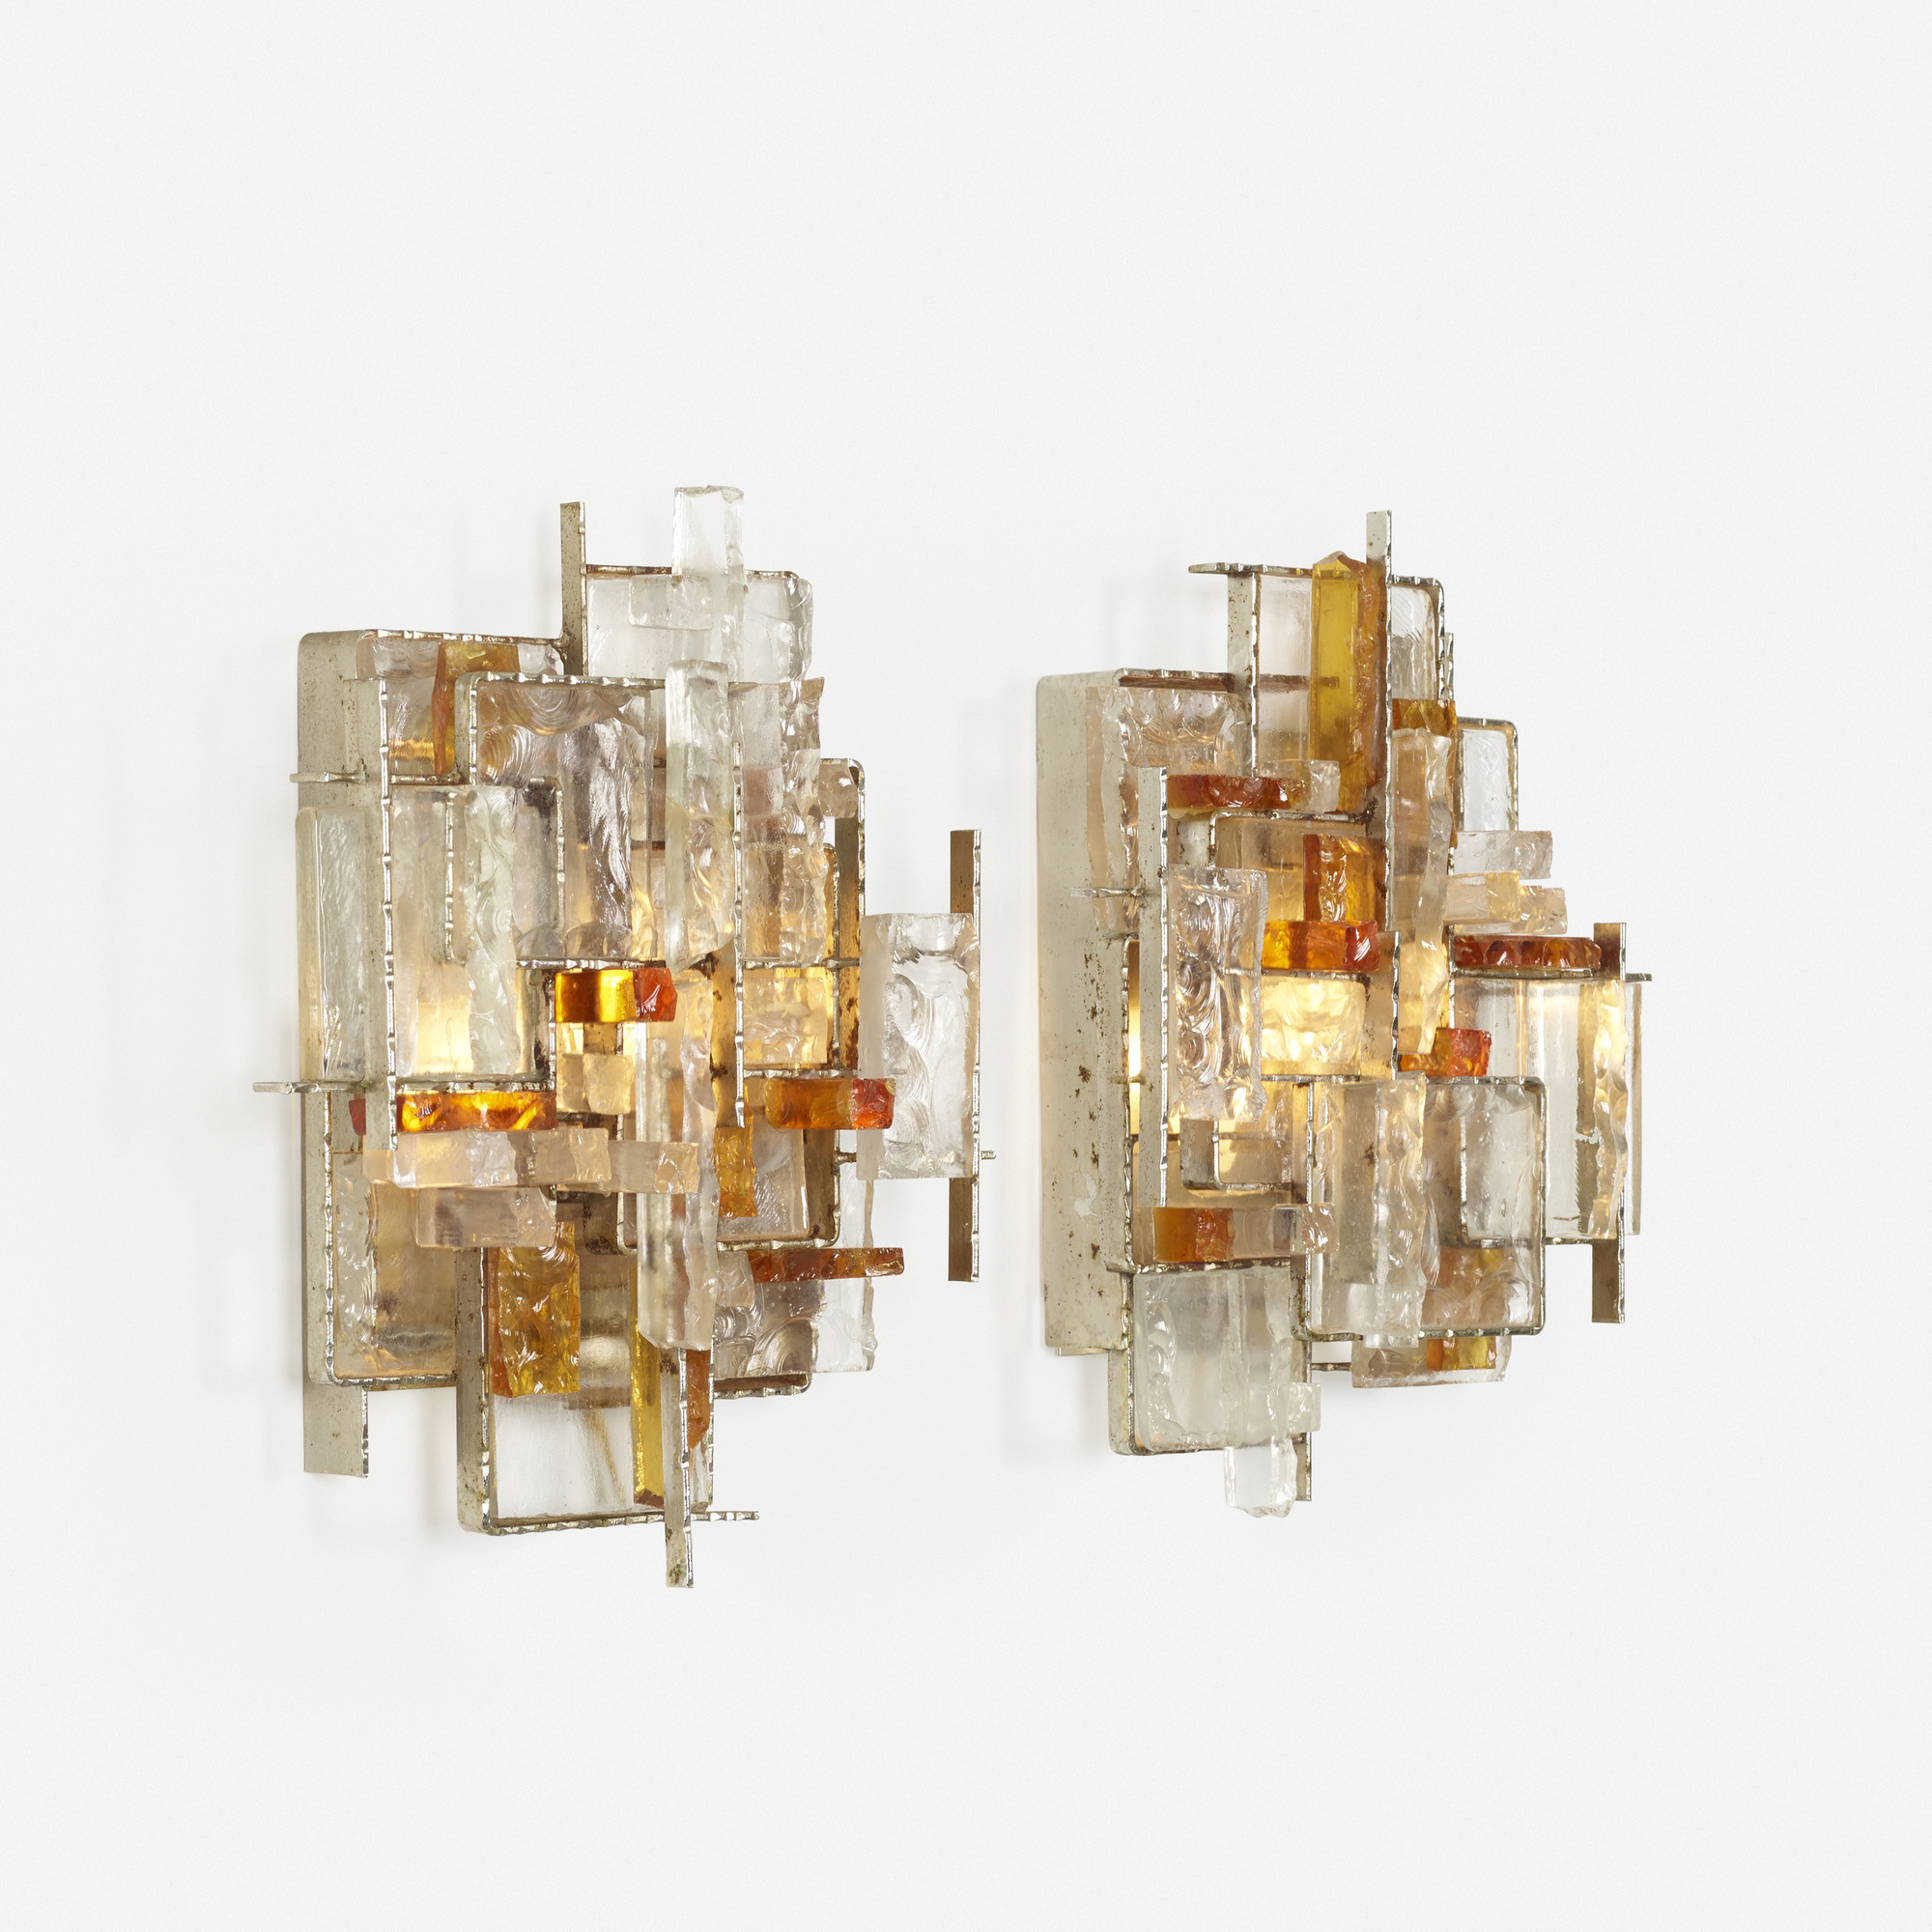 254: Poliarte / wall lights, pair (2 of 4)